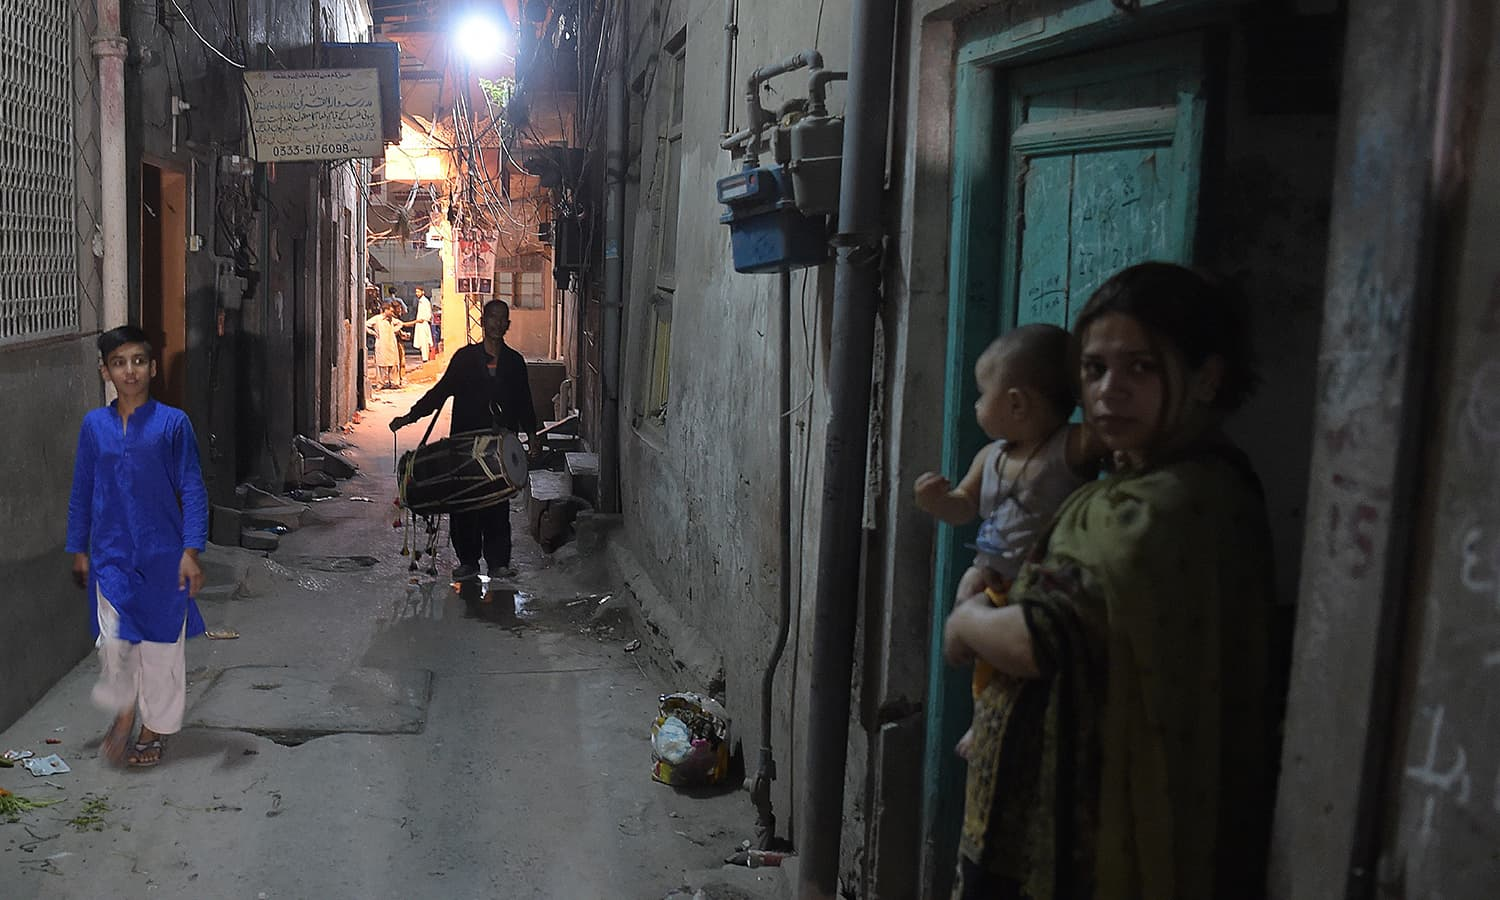 Residents of the area look on as Lal Hussain walks in streets, beating his drum to wake people up for sehri. — AFP